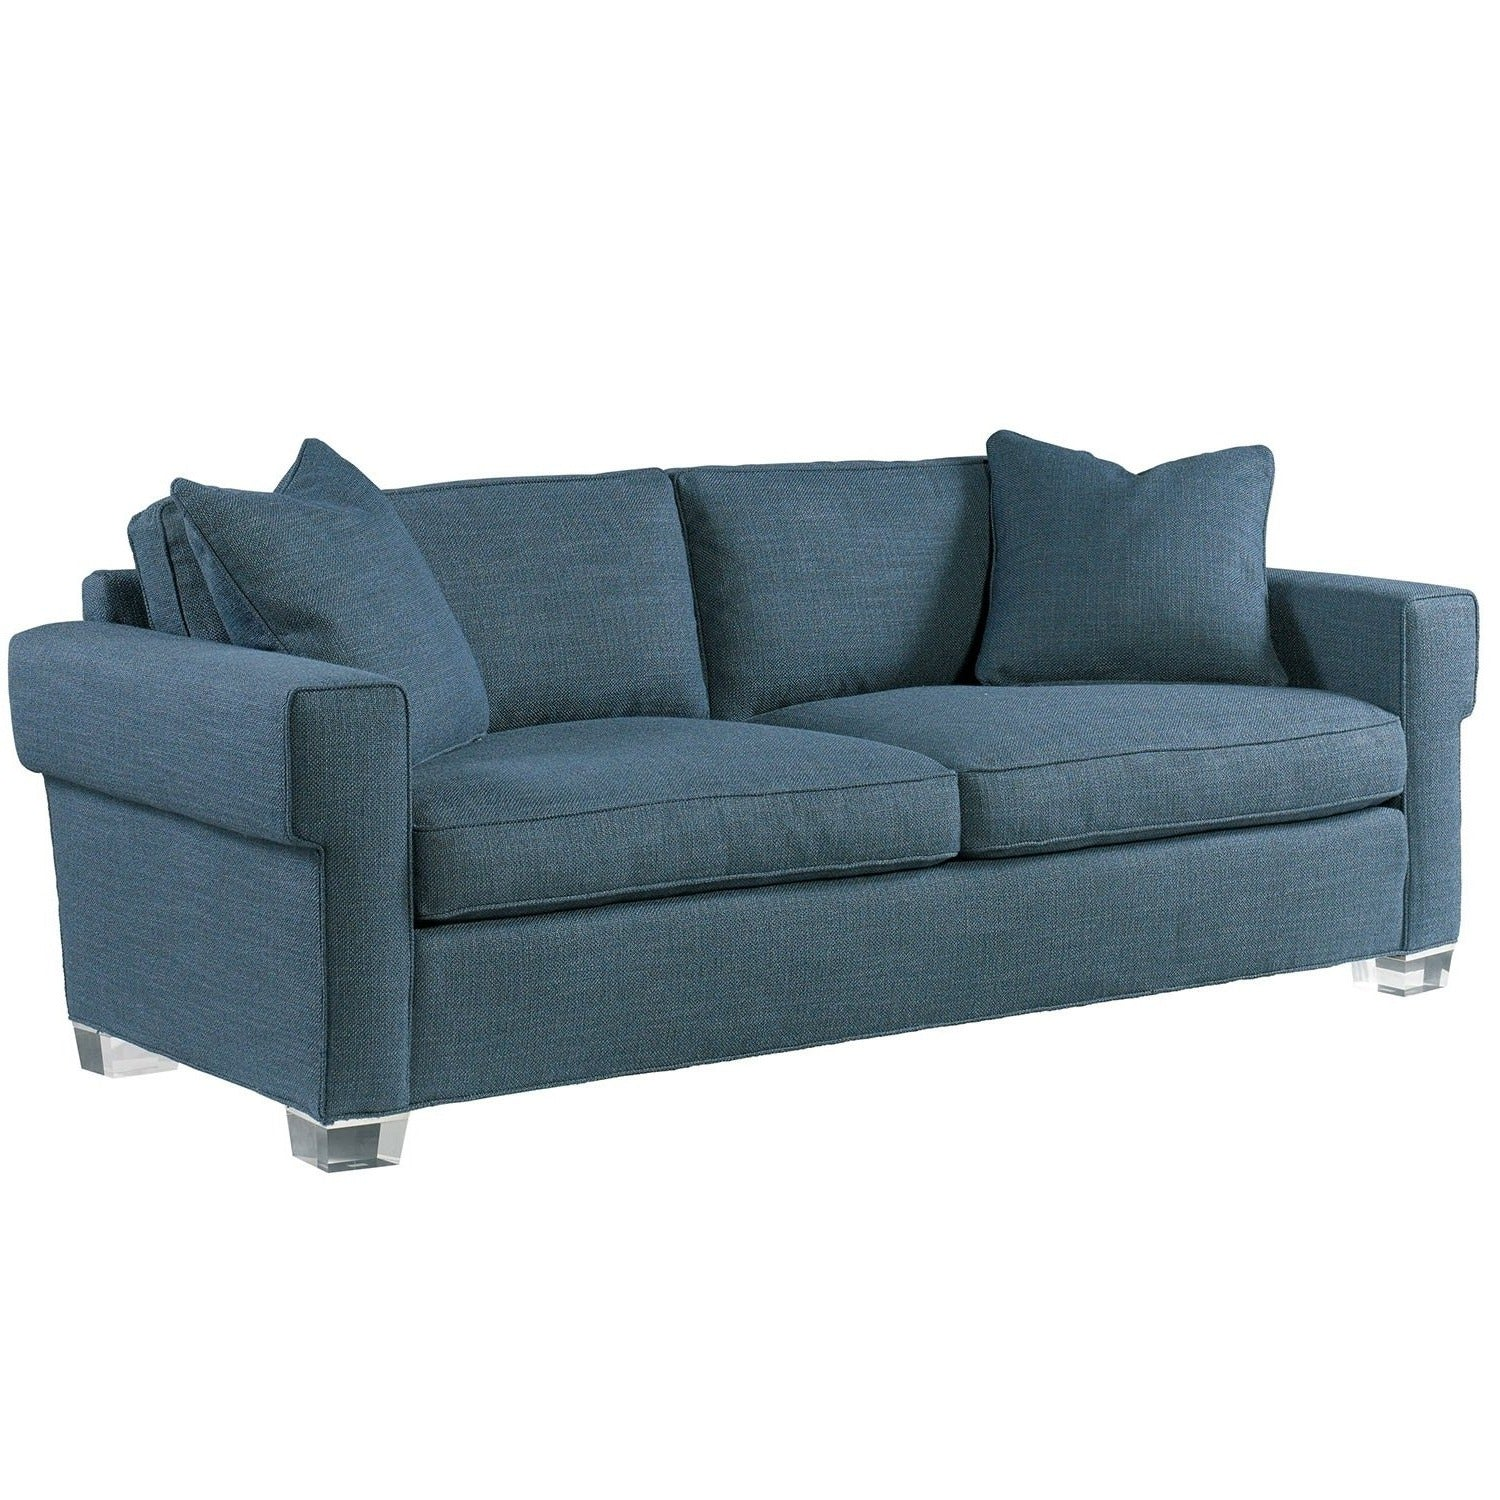 HATCHER SOFA